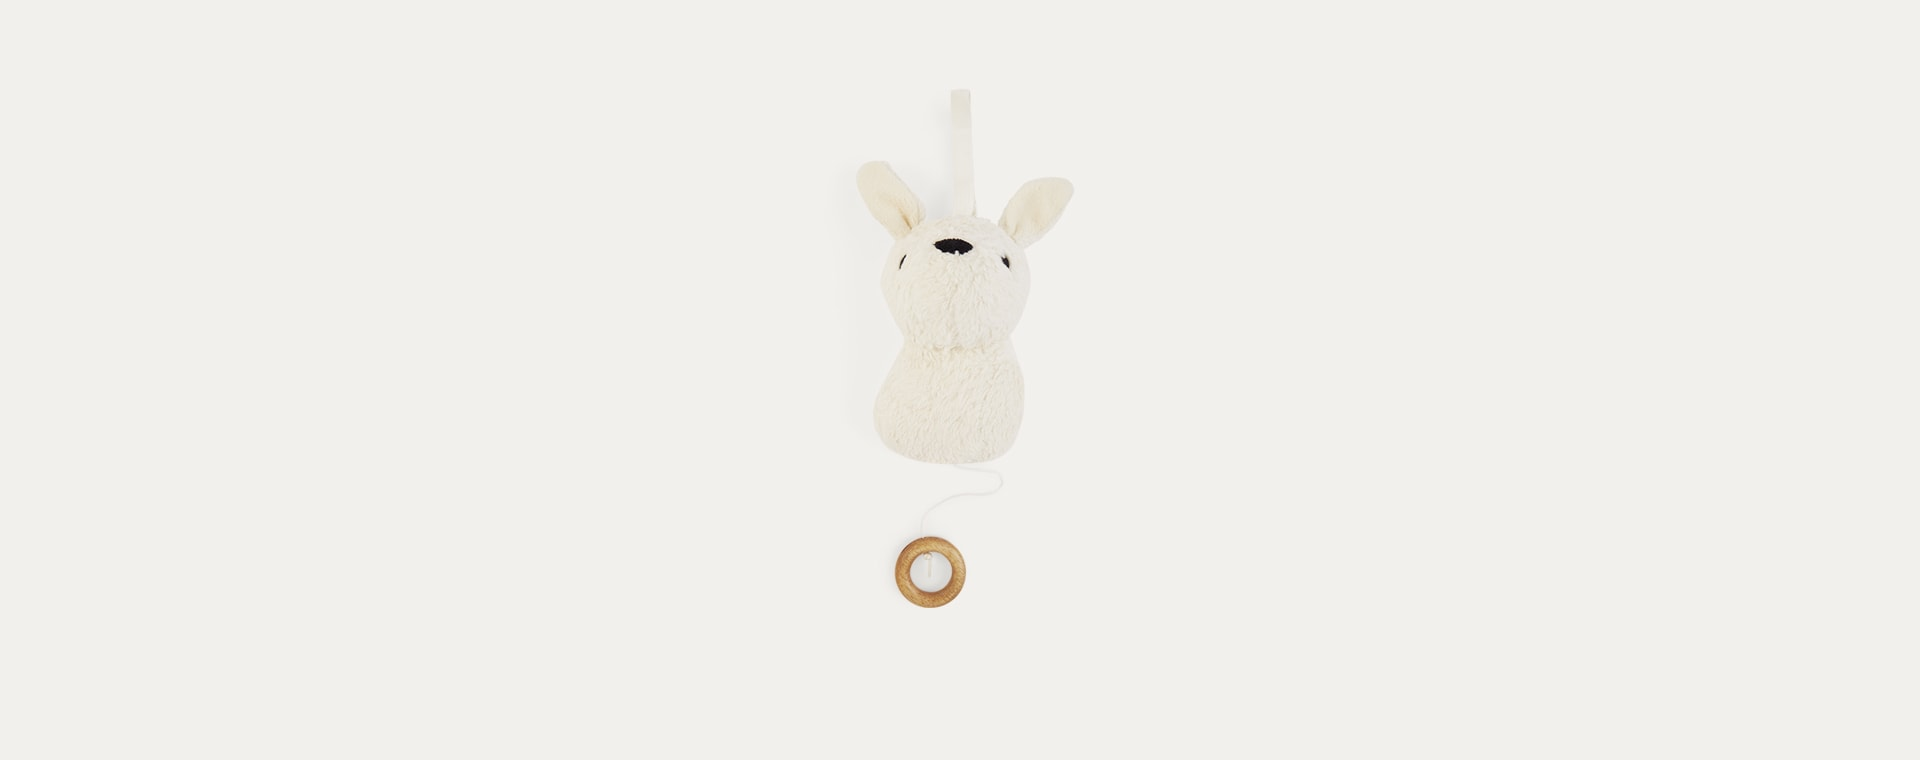 Off White Franck & Fischer Aura Rabbit Musical Toy